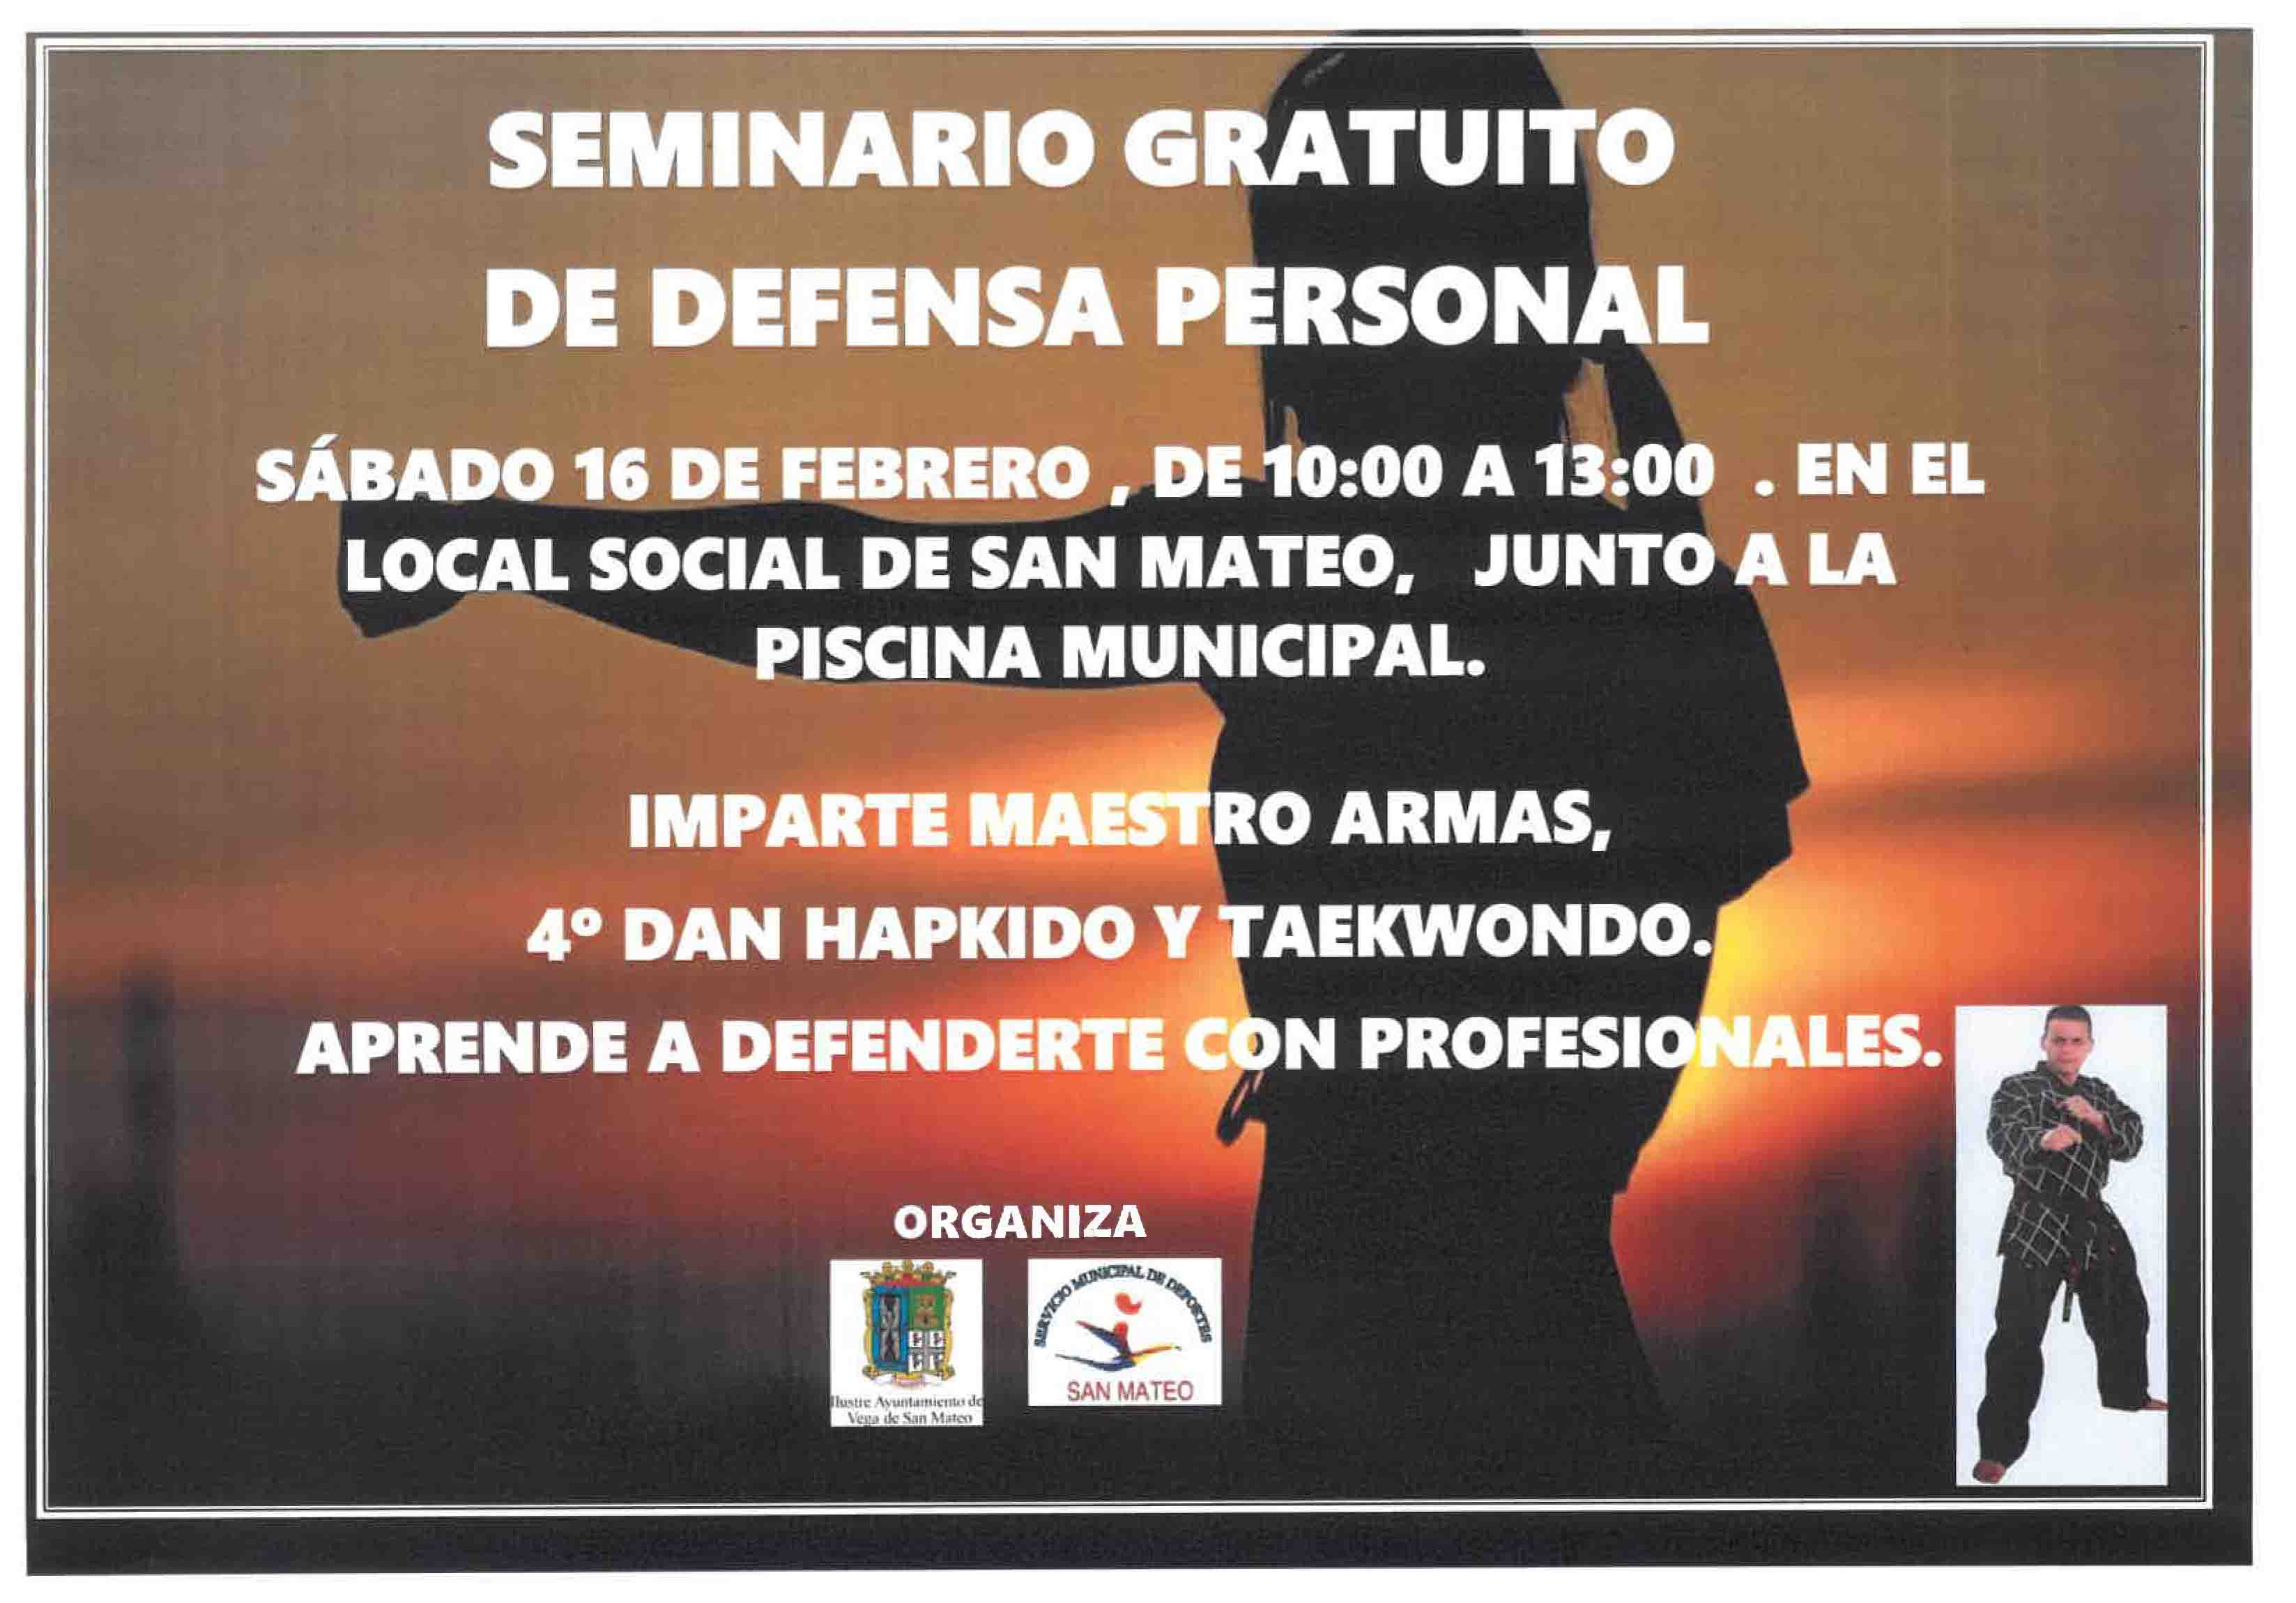 cartel de defensa personal 2 1 1